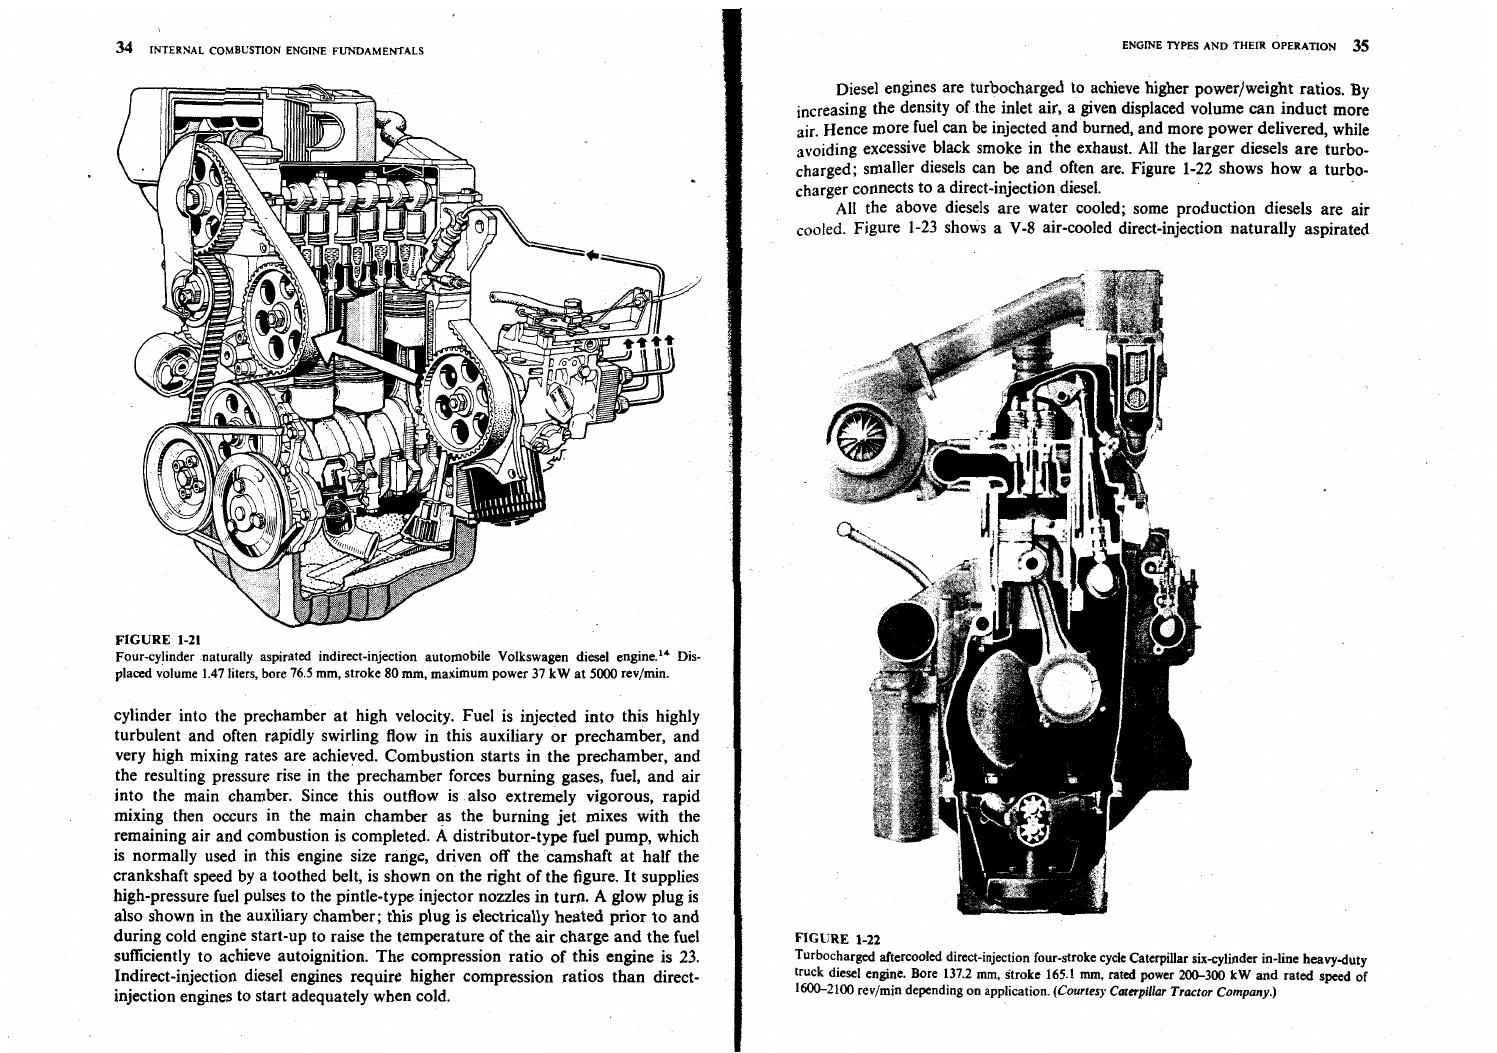 Internal combustion engines fundamentals heywood by Thai